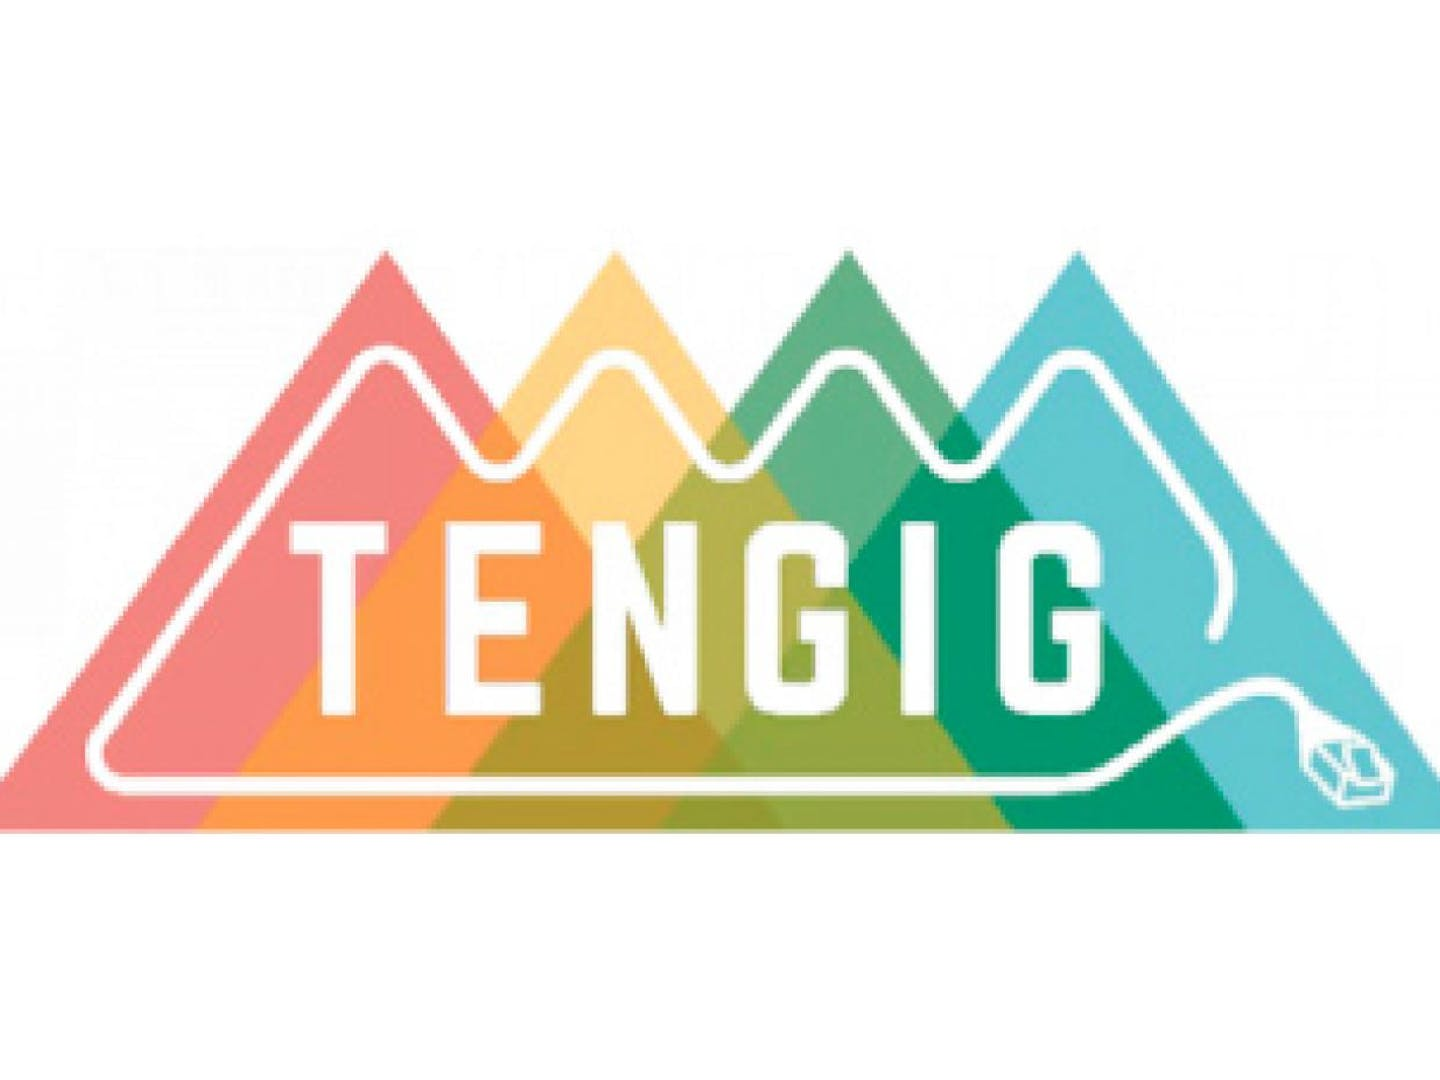 tengig-festival-brings-the-best-games-in-esports-to-chattanooga-the-city-with-the-fastest-internet-in-the-world-from-october-6-to-8.jpeg